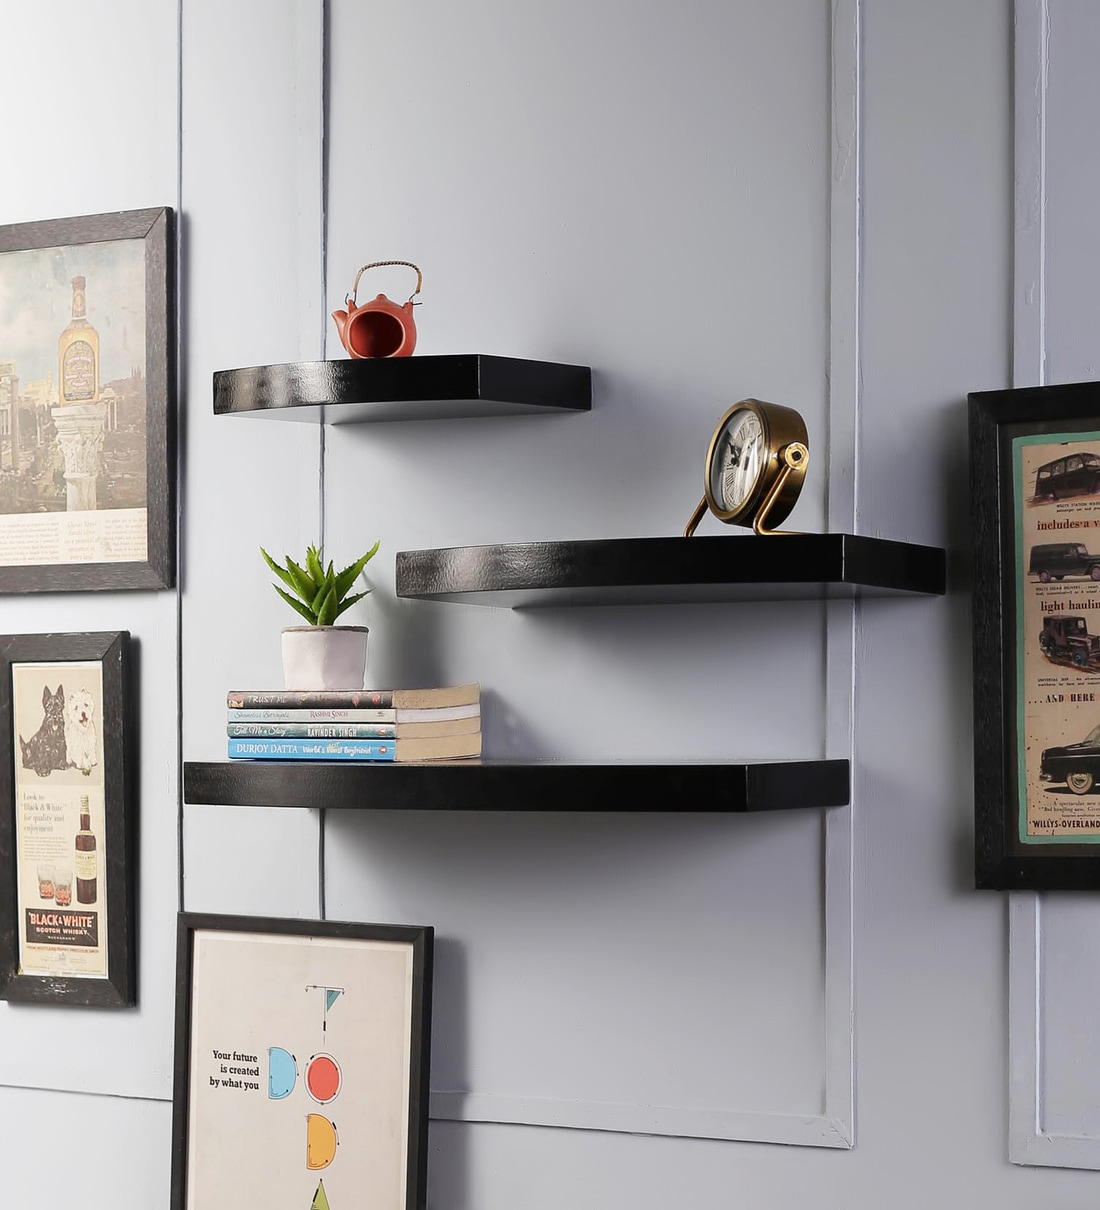 Buy Set Of 3 Engineered Wood Round Floating Wall Shelf In Black Colour By Driftingwood Online Mid Century Wall Shelves Wall Shelves Home Decor Pepperfry Product